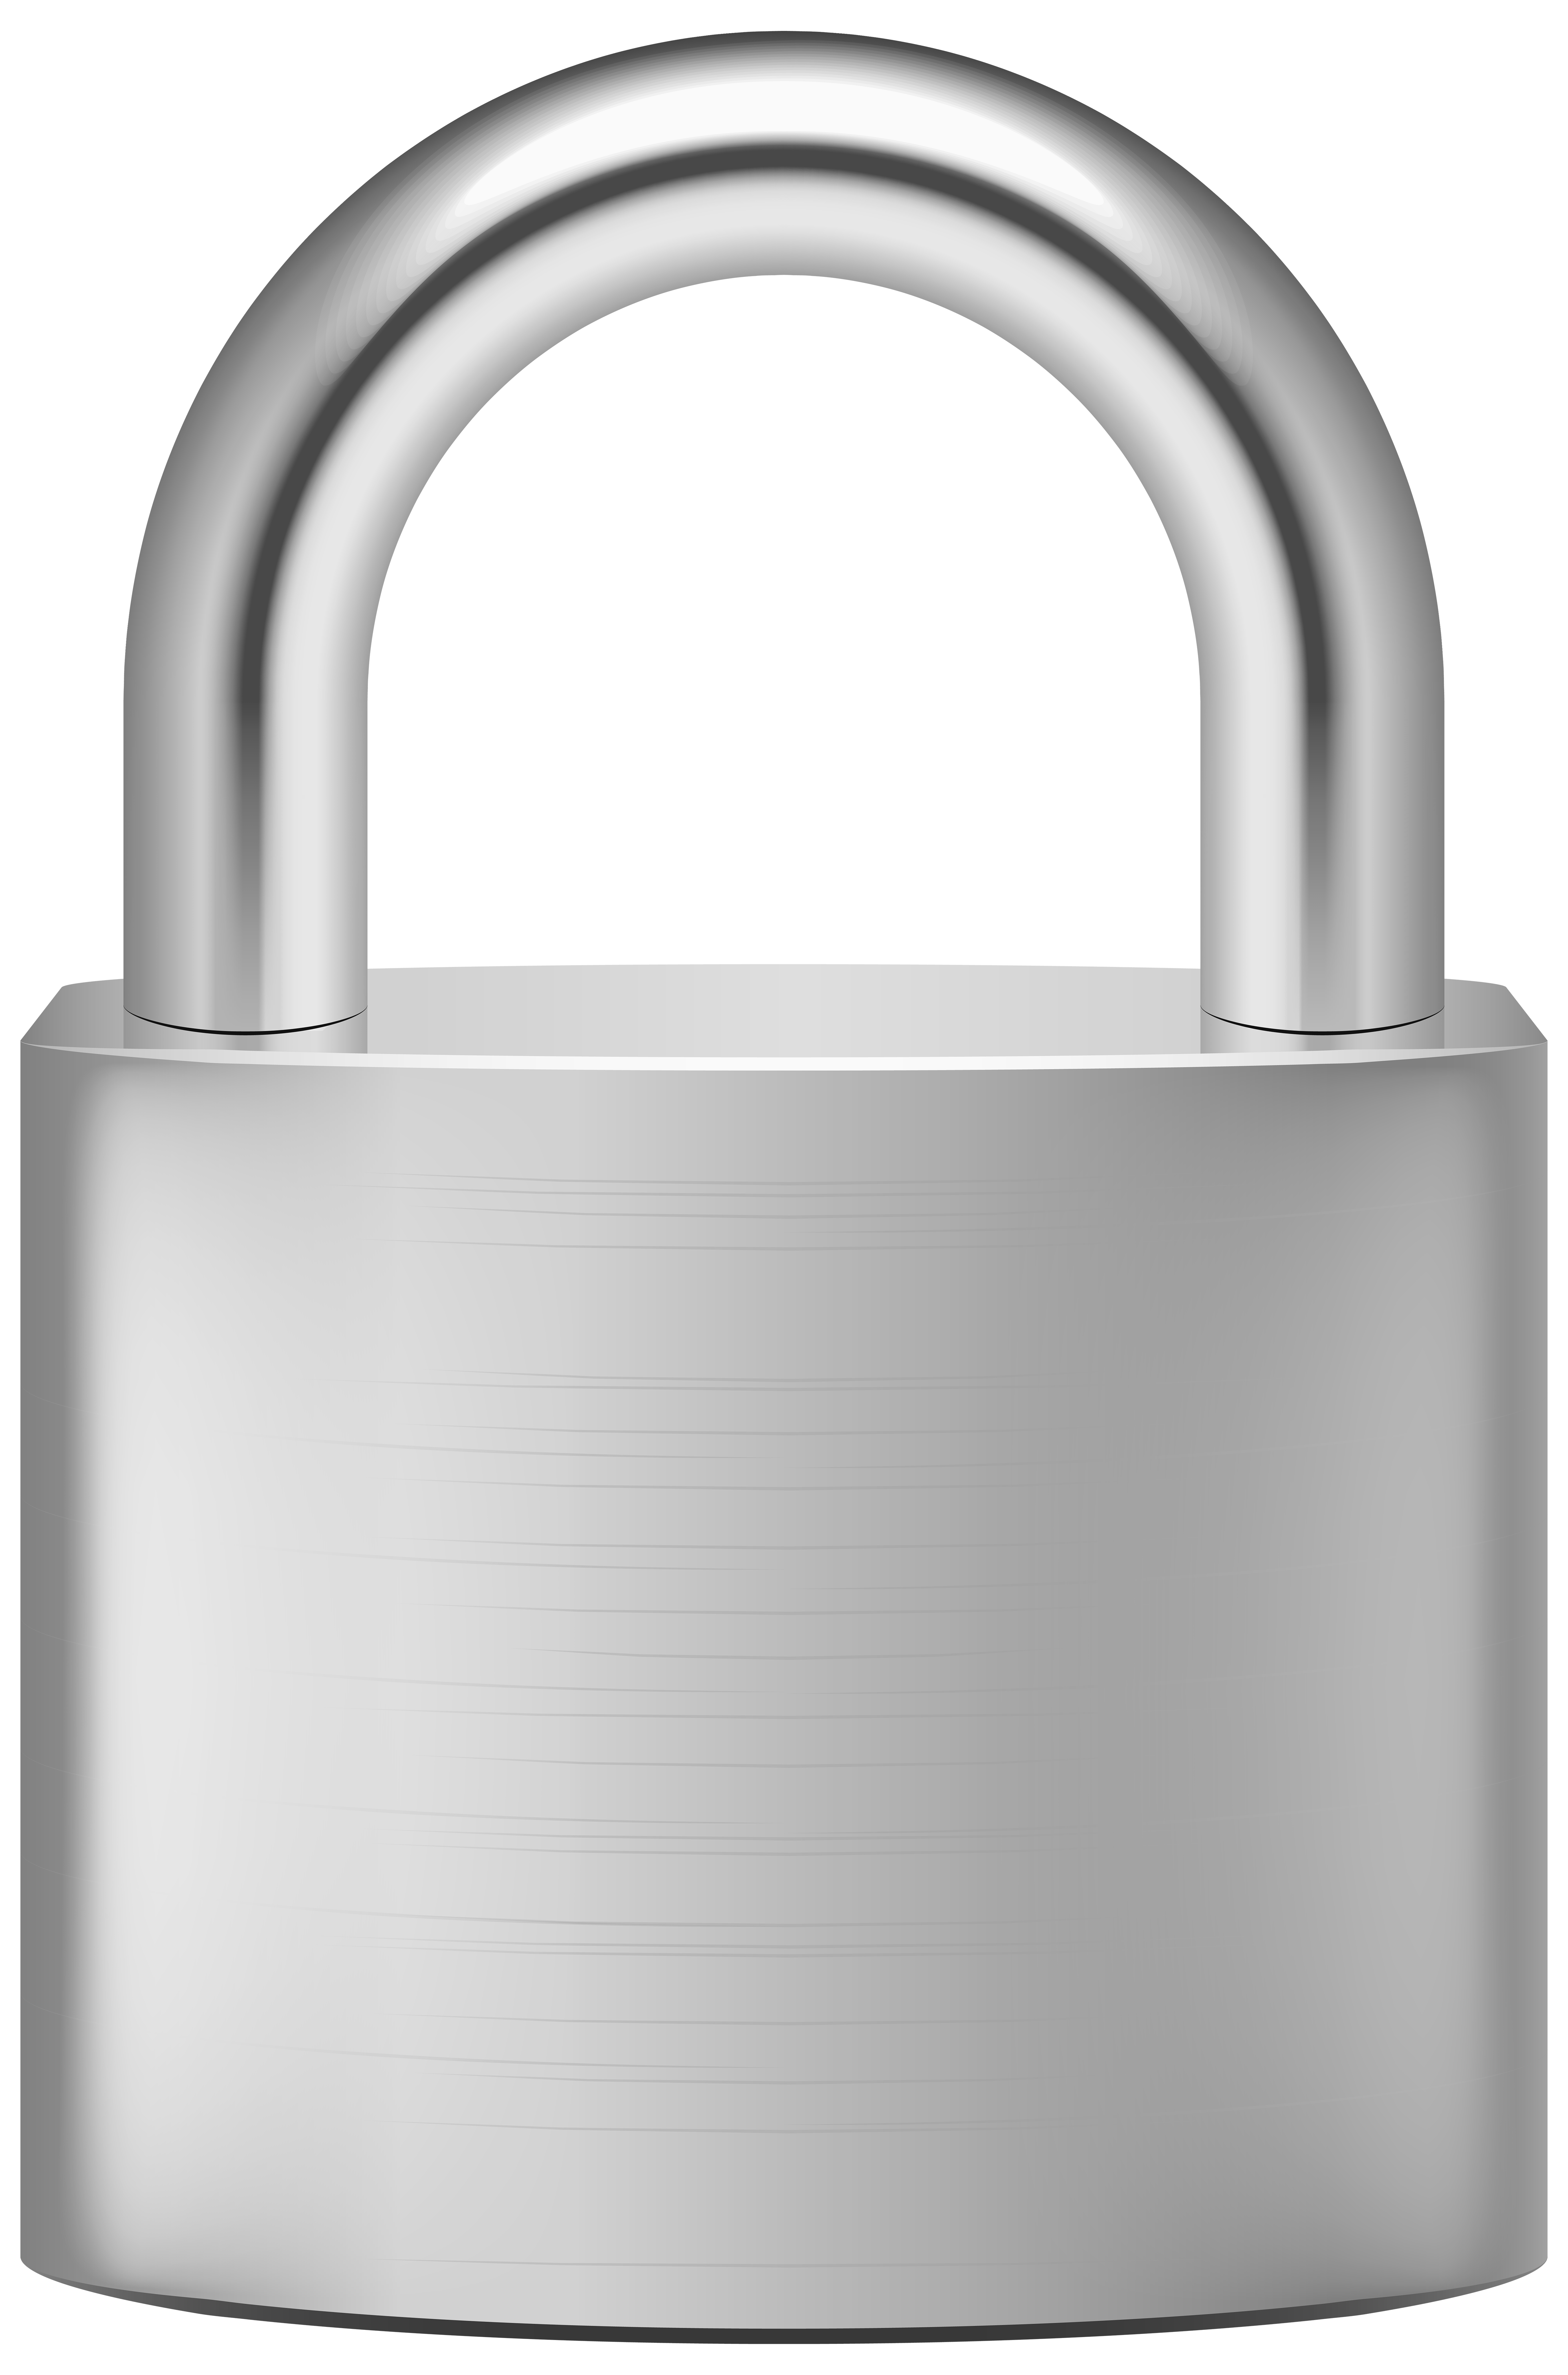 Lock clipart real. Closed png clip art